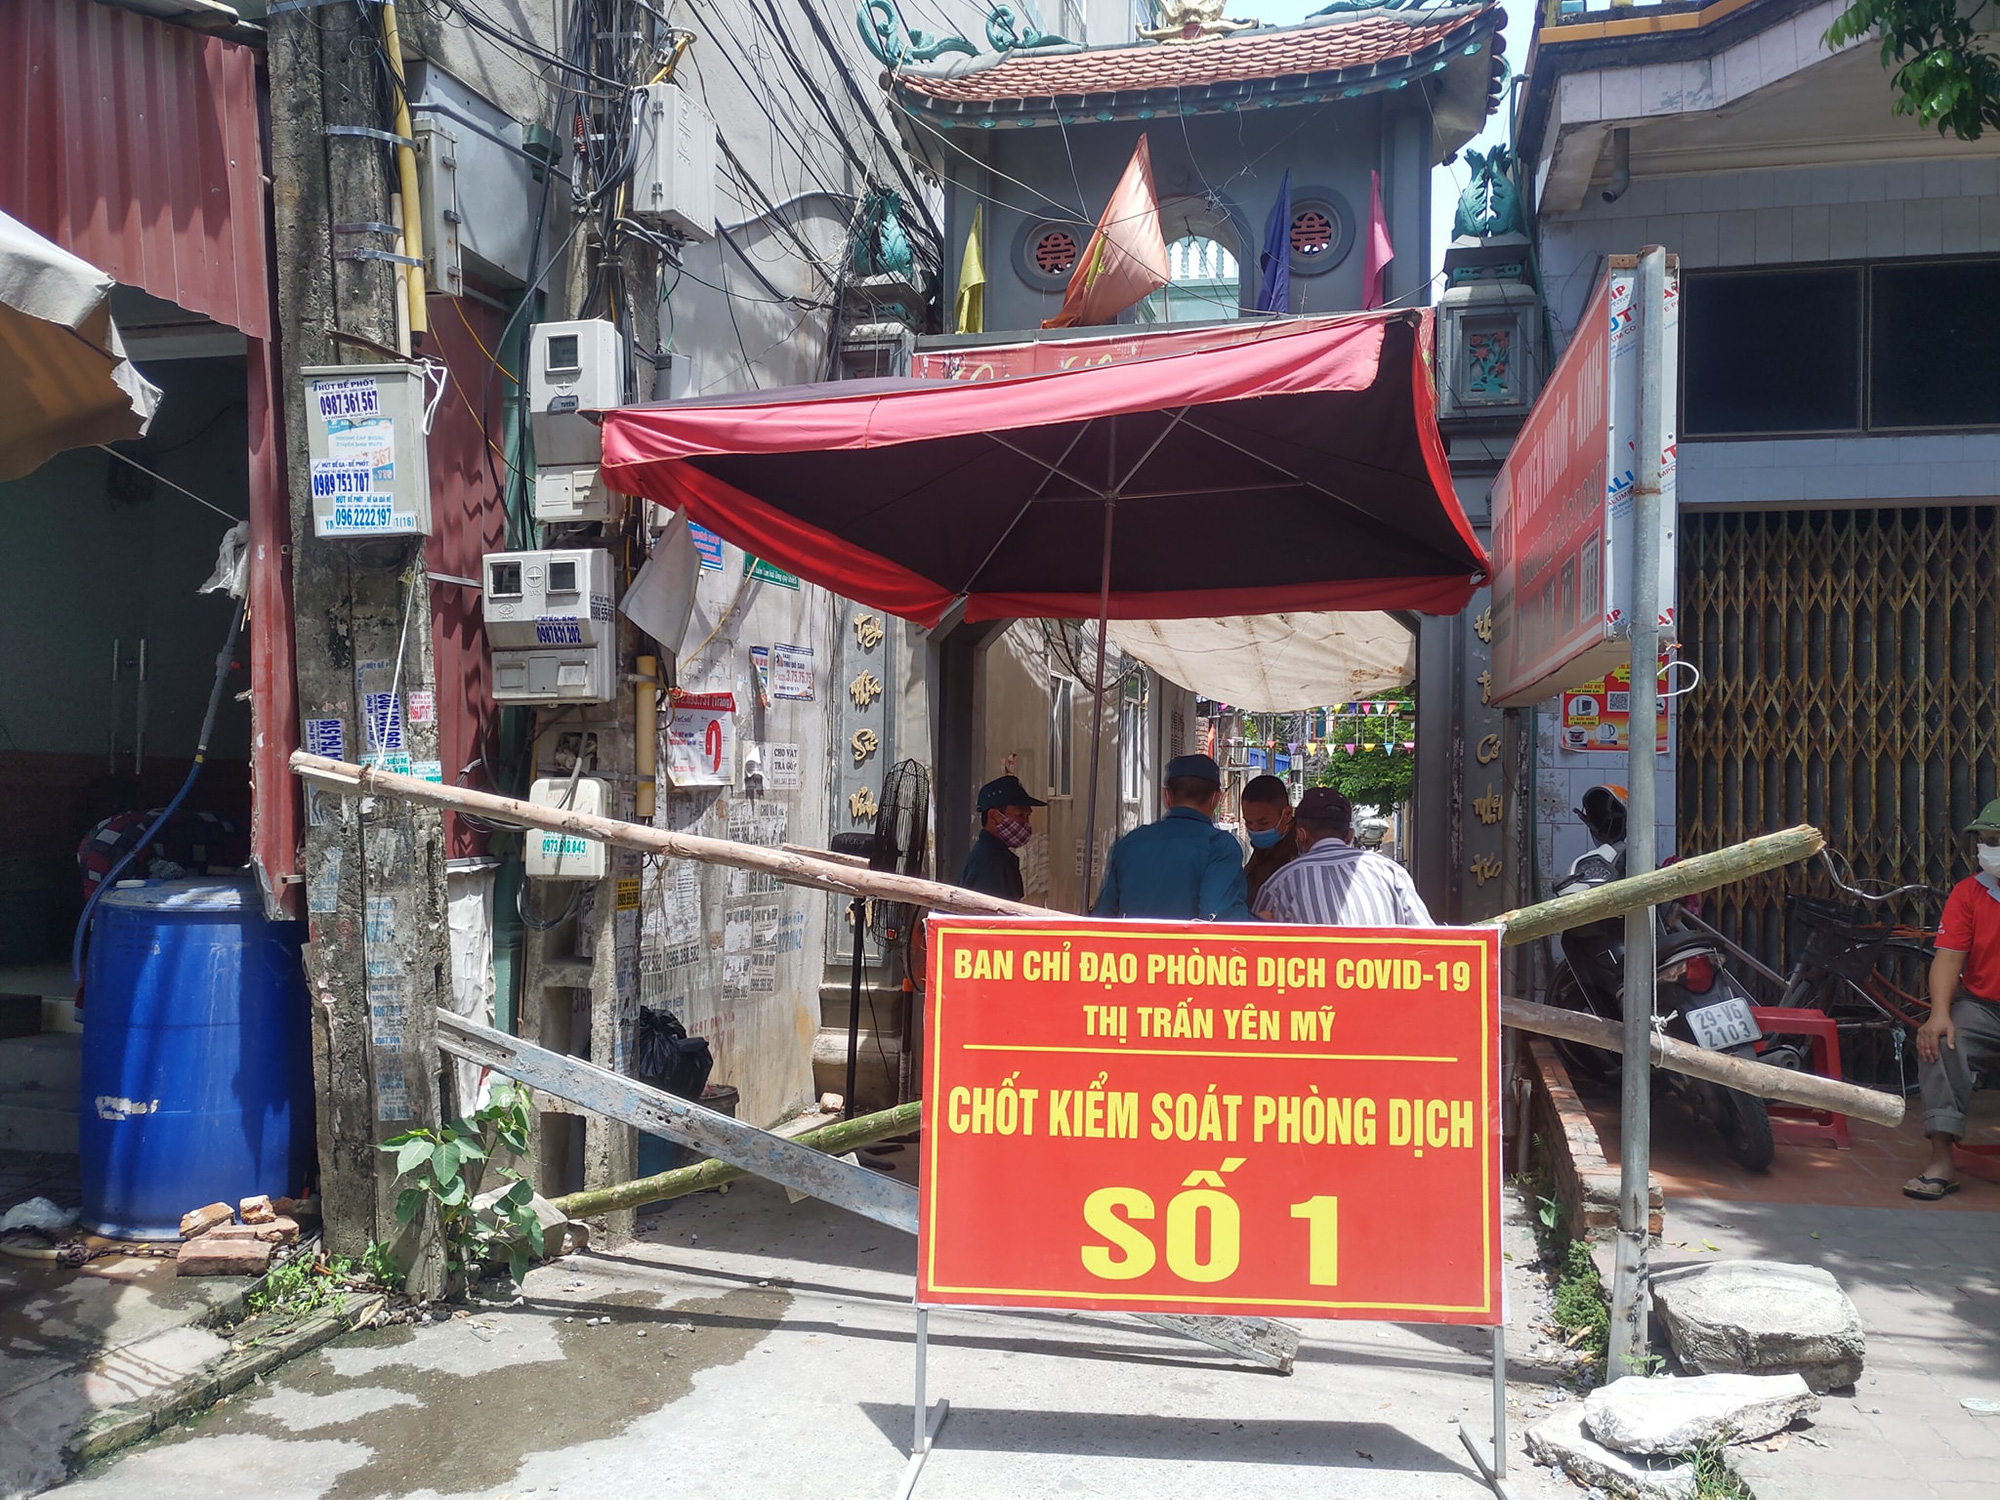 4,000-employee company in northern Vietnam closed after worker contracts coronavirus